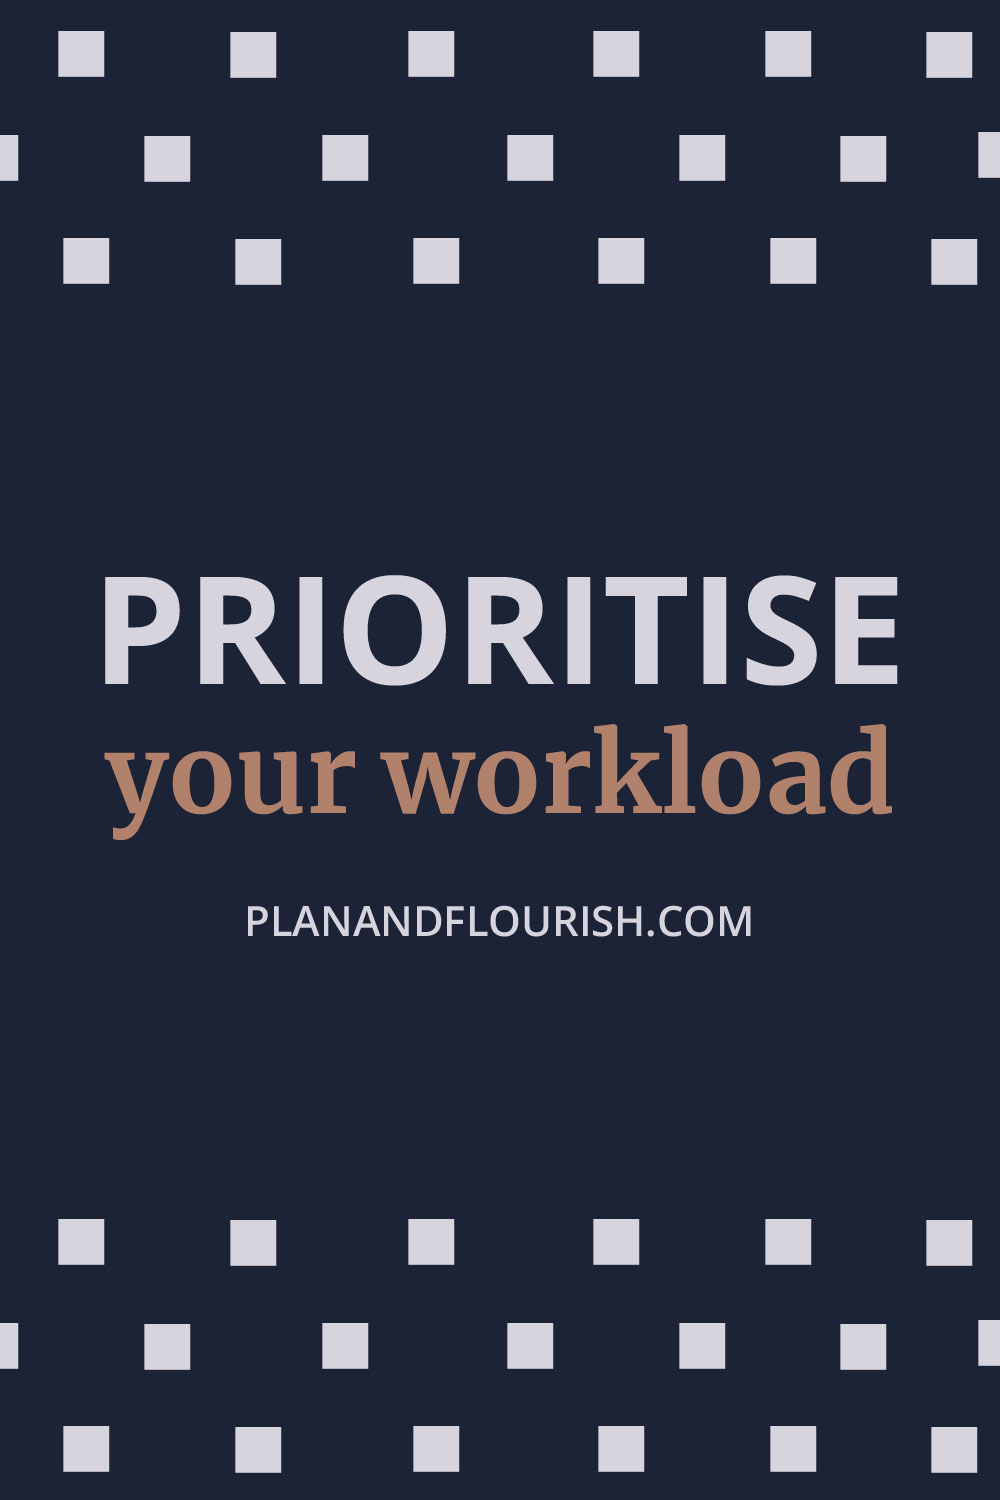 Prioritise Your Workload | Read It Now